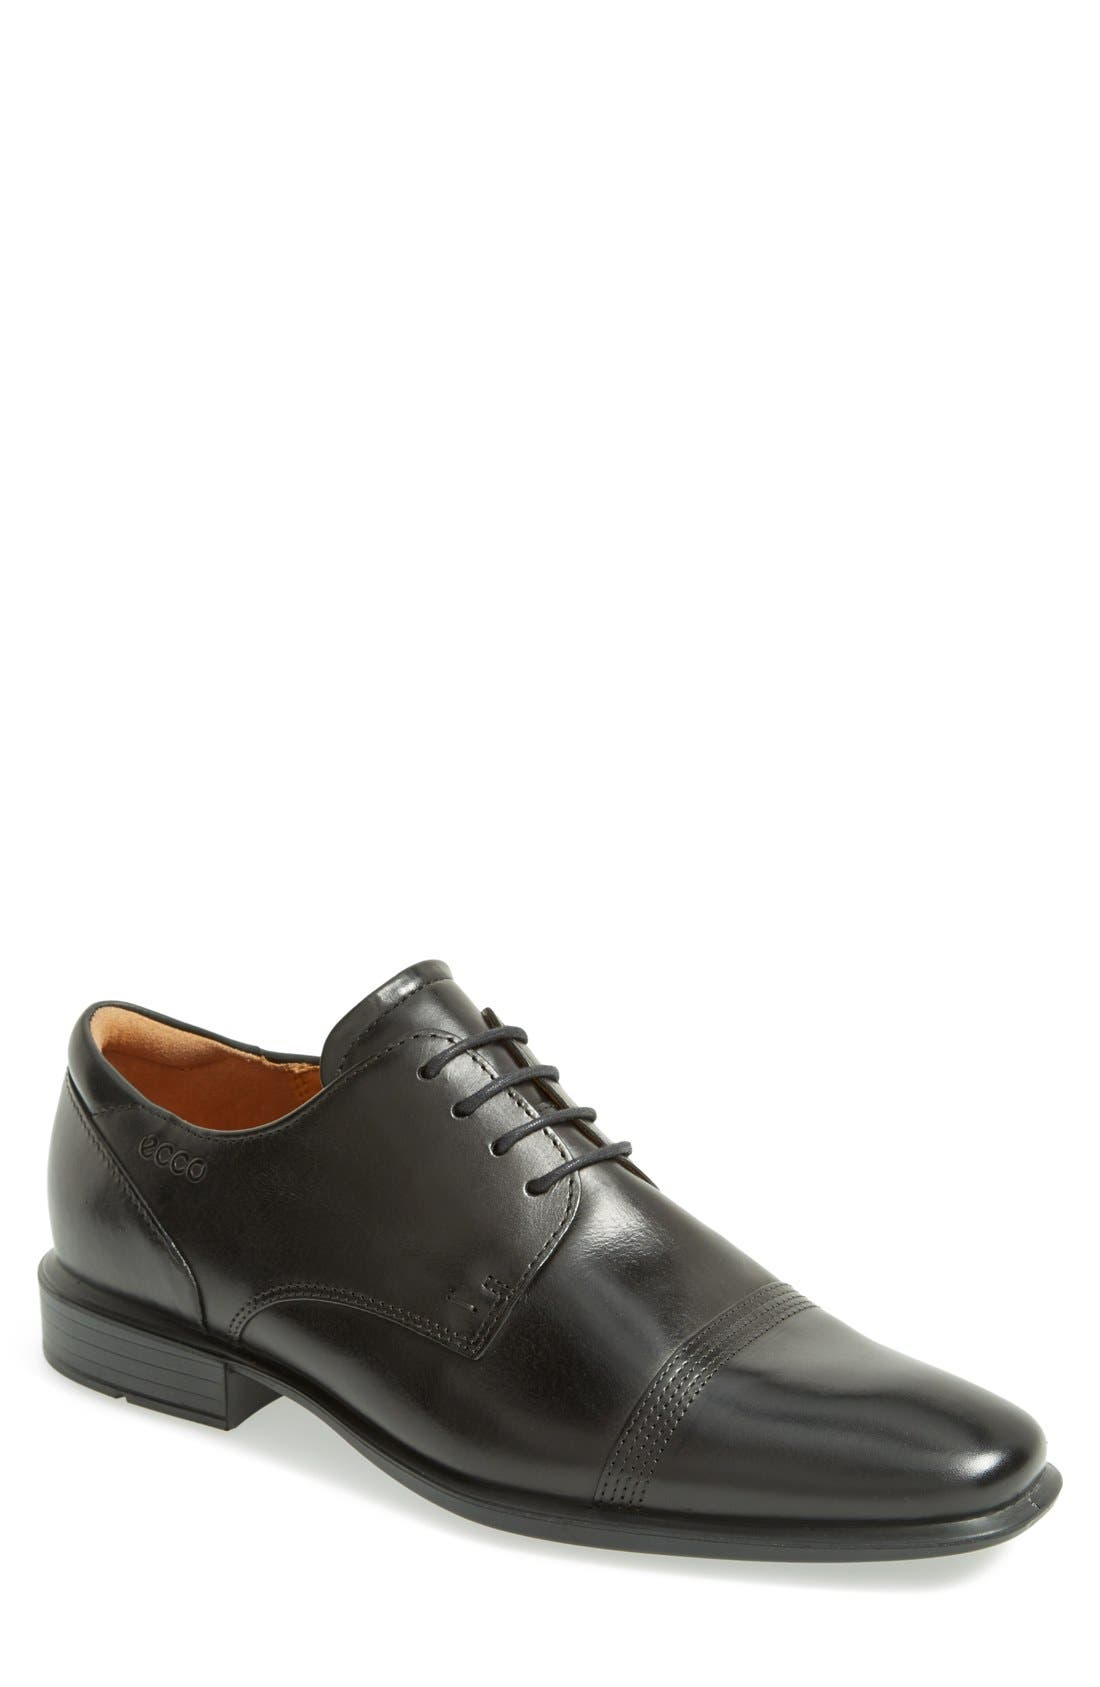 Main Image - ECCO 'Cairo' Cap Toe Derby (Men)